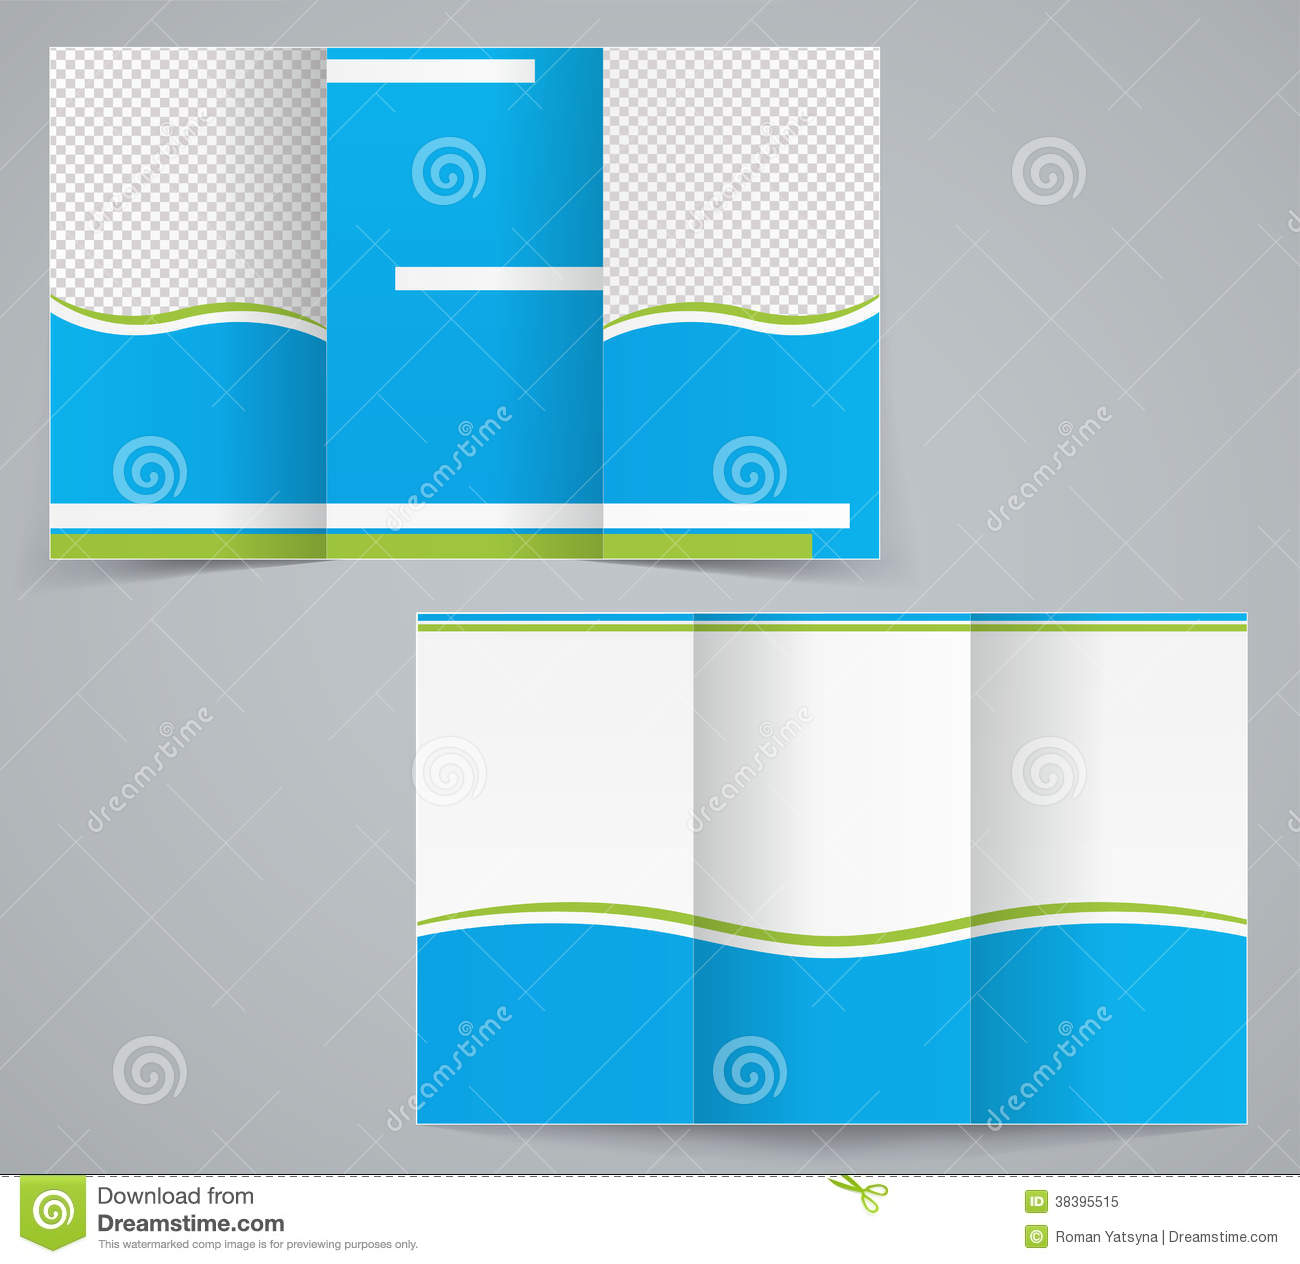 Tri fold business brochure template blue design stock vector download tri fold business brochure template blue design stock vector illustration of design wajeb Images